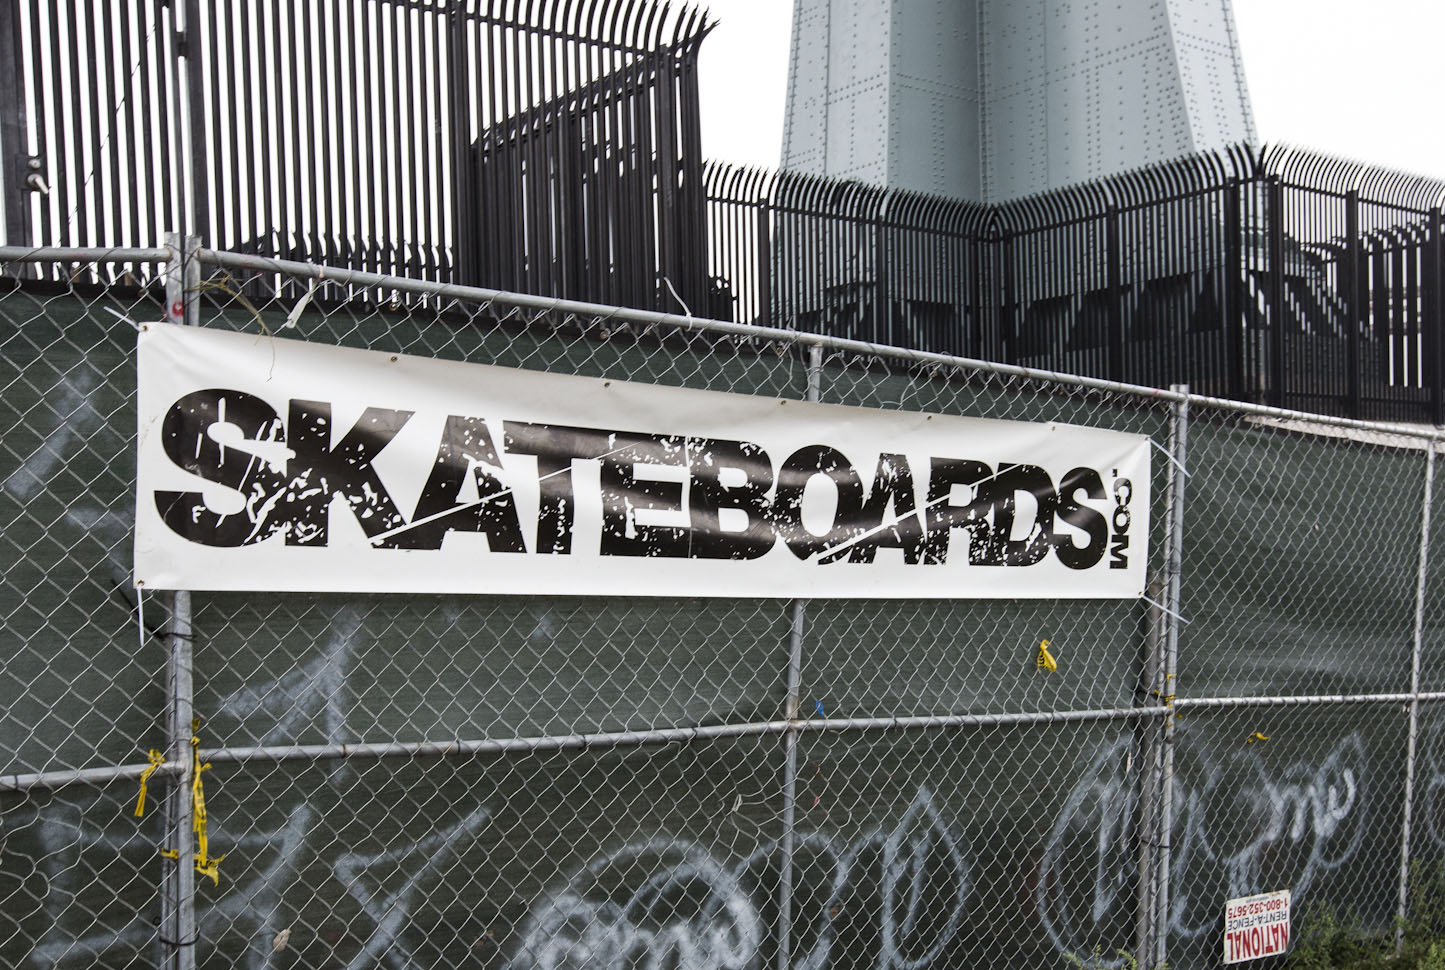 Skateboards.com  got some!